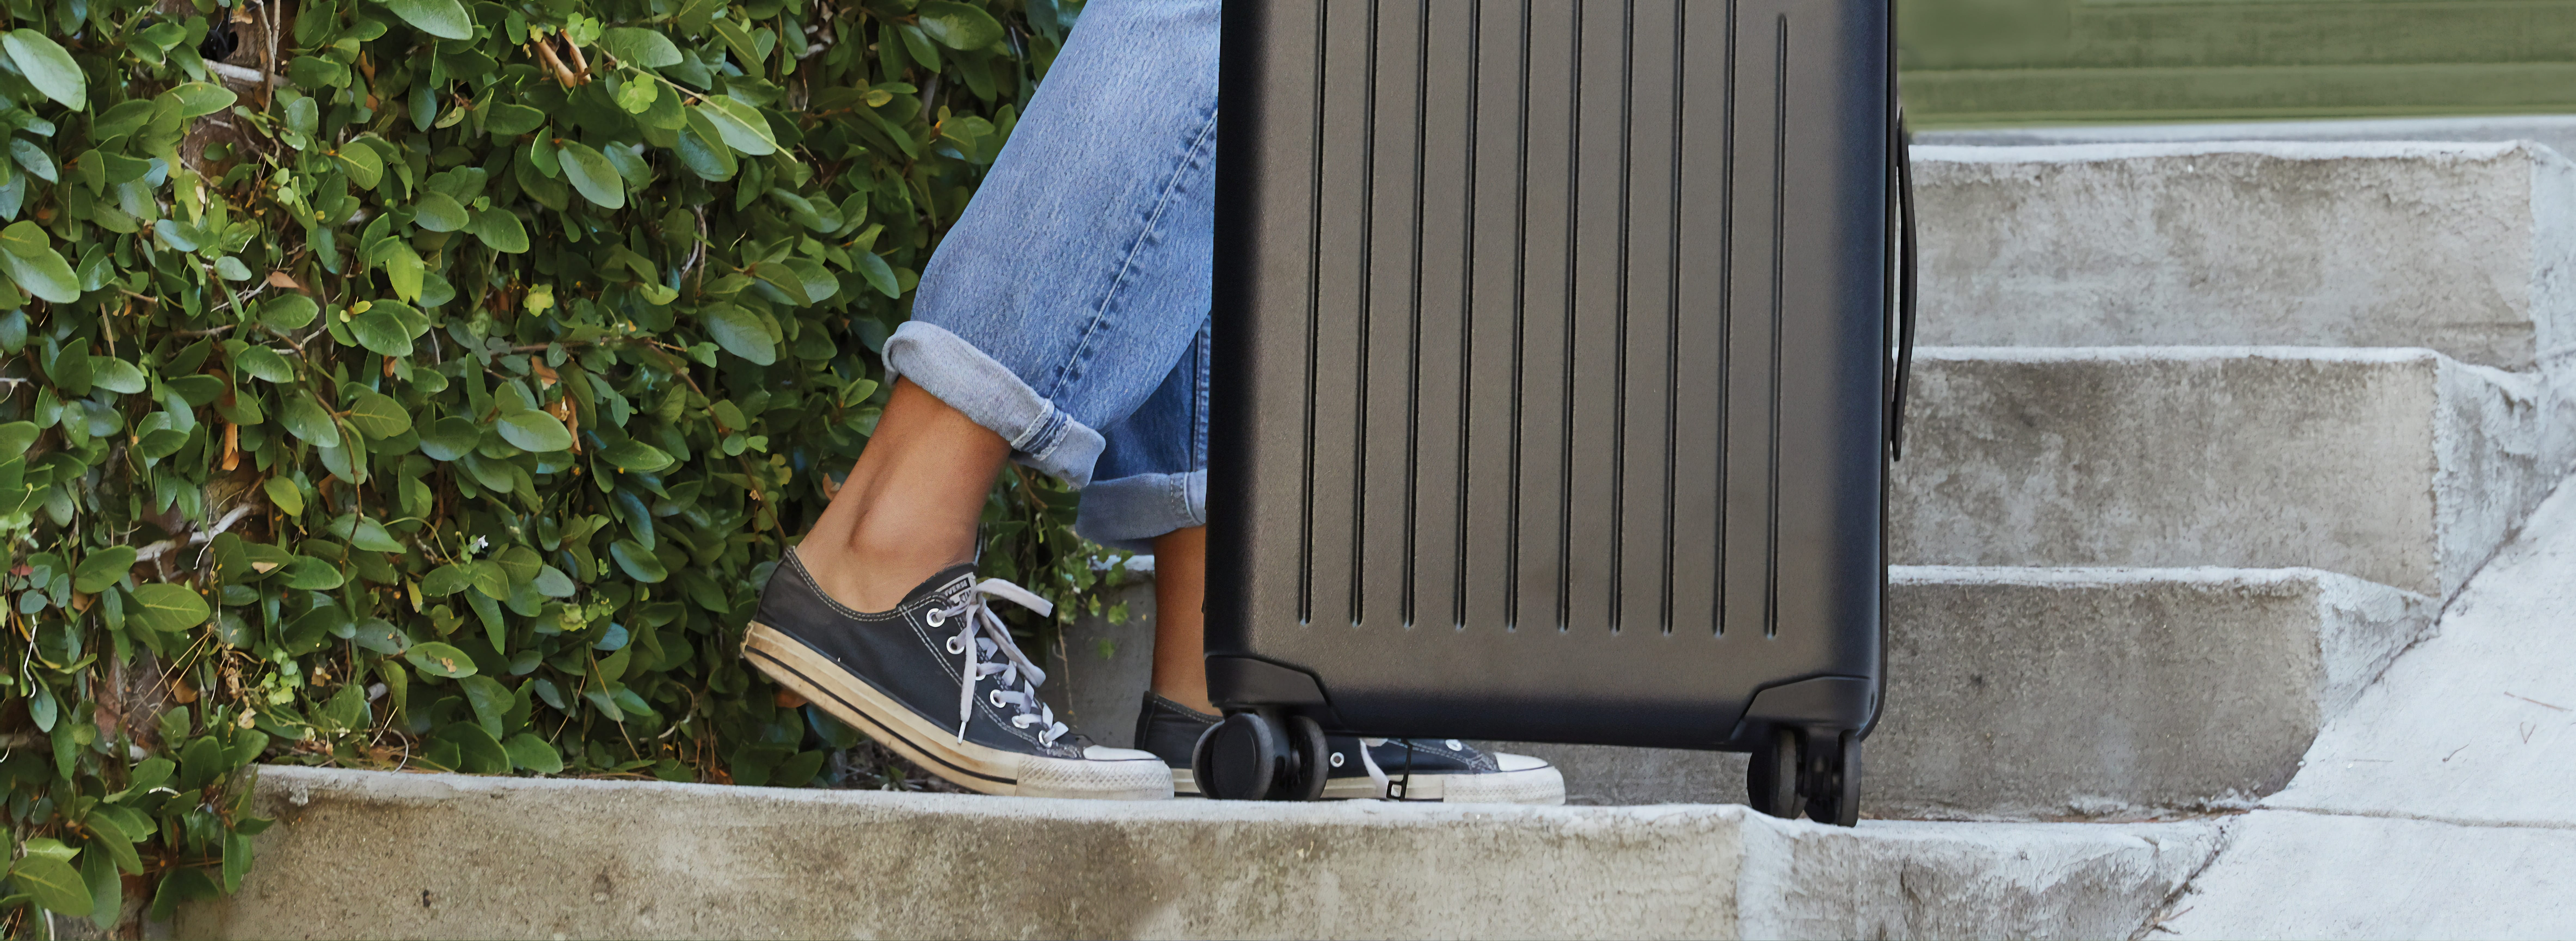 a closeup of a womans shoes and a roller luggage bag on steps, highlighting the benefits of vacation travel